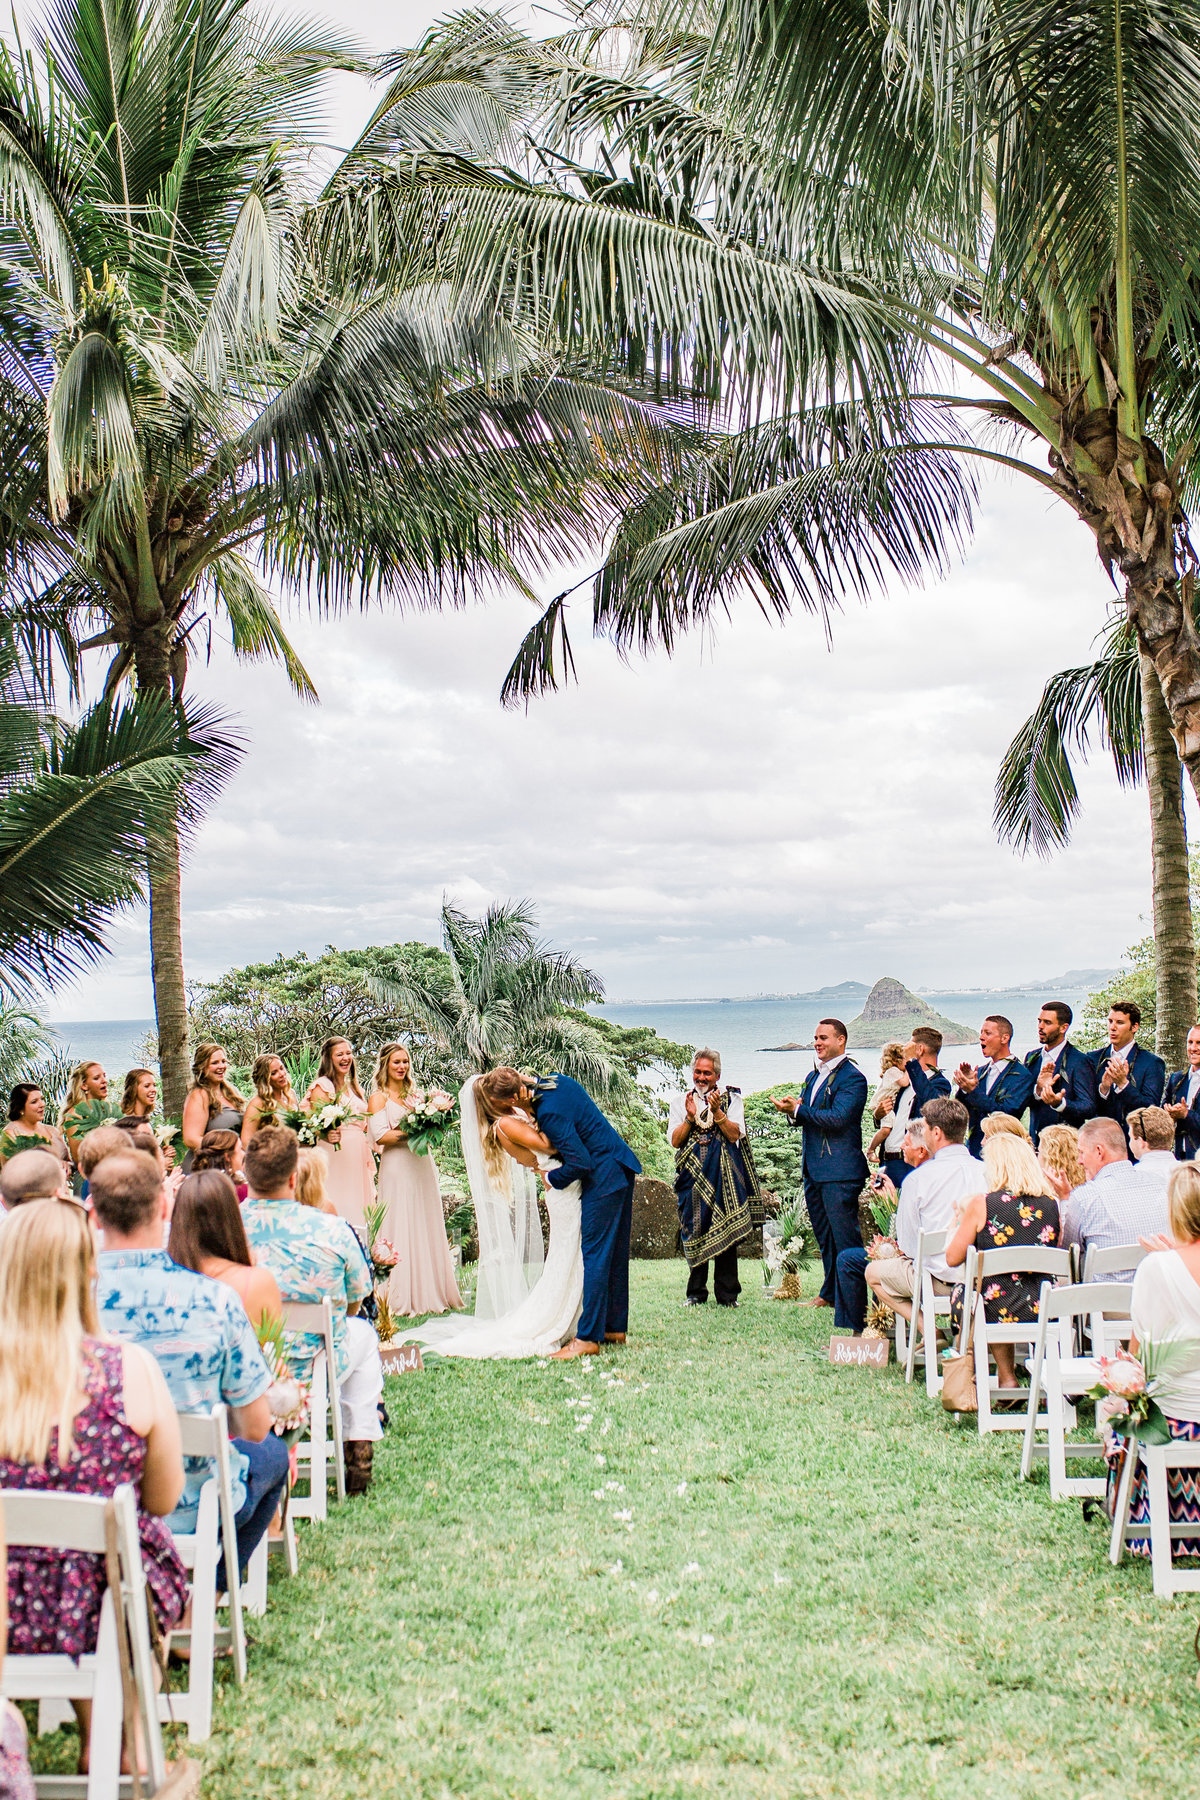 paliku gardens kualoa ranch wedding 6A0997-4